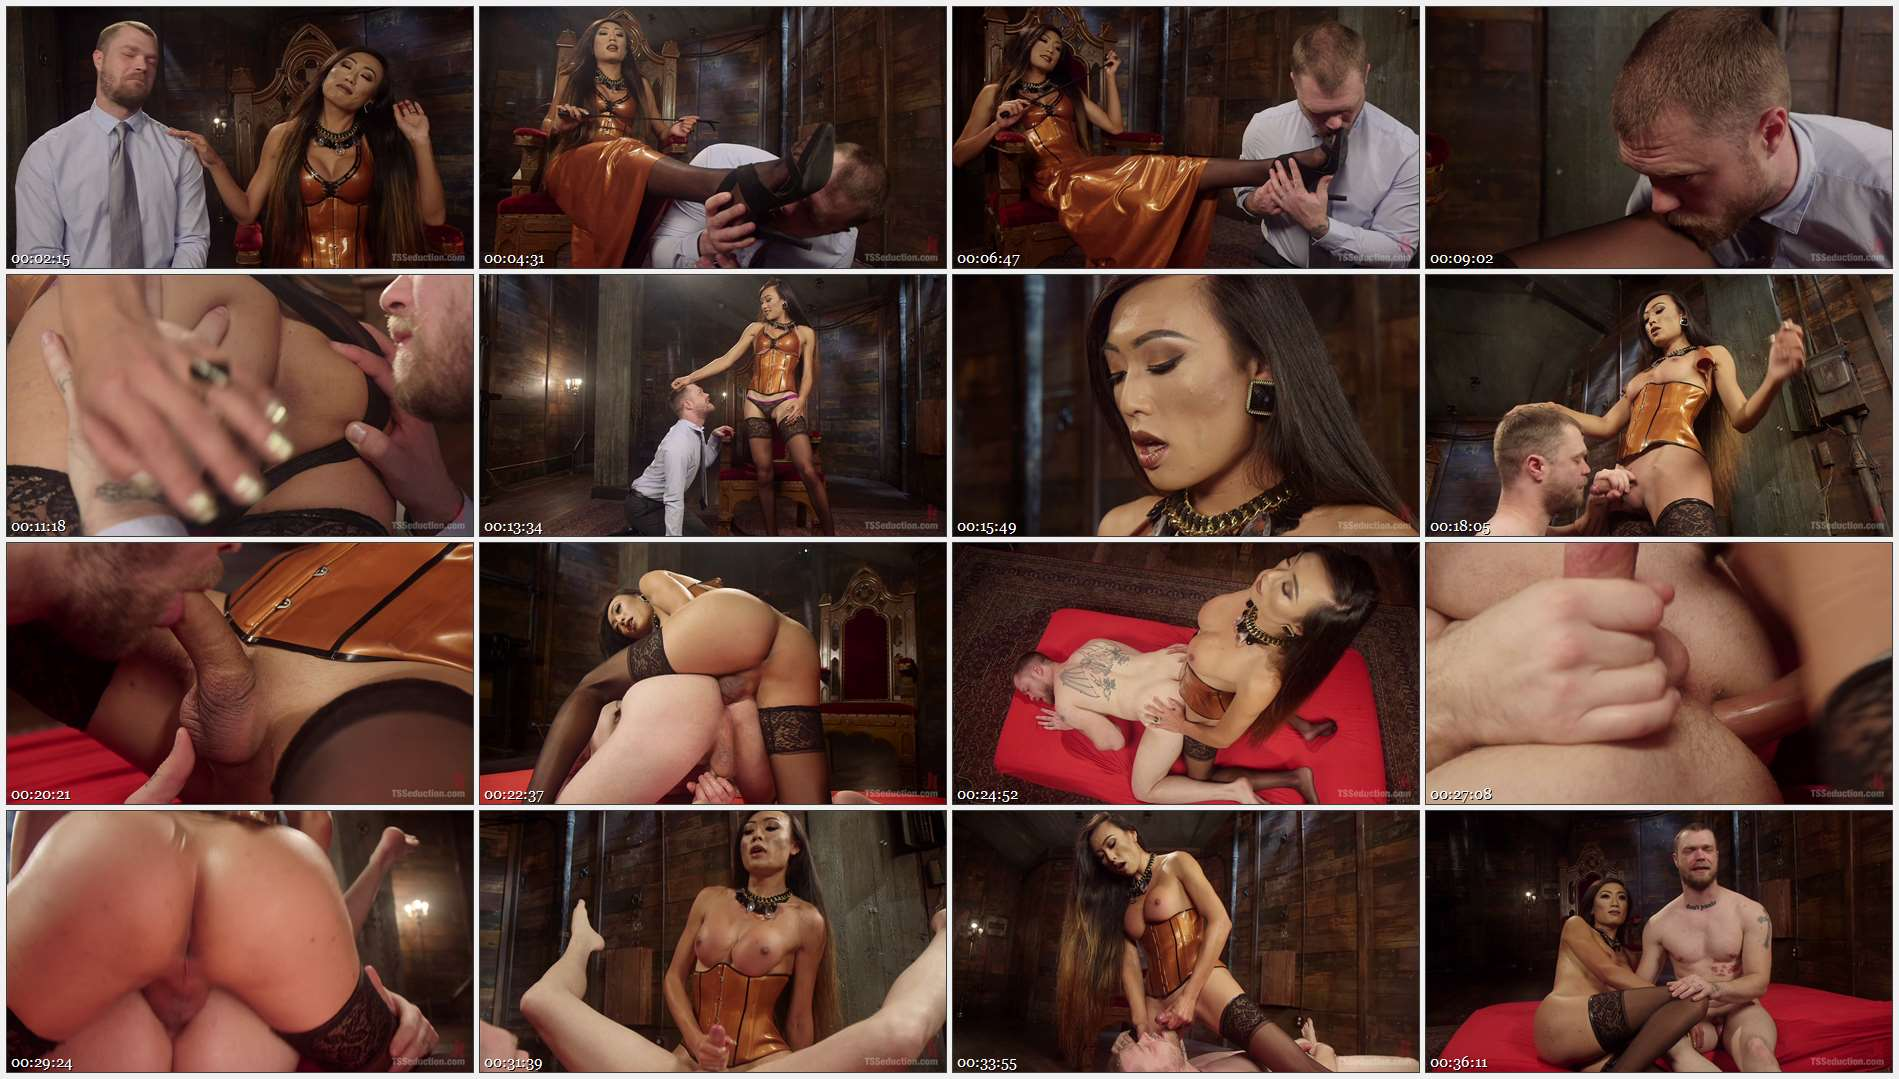 Mike Panic – Venus Lux – Her Willing Slave